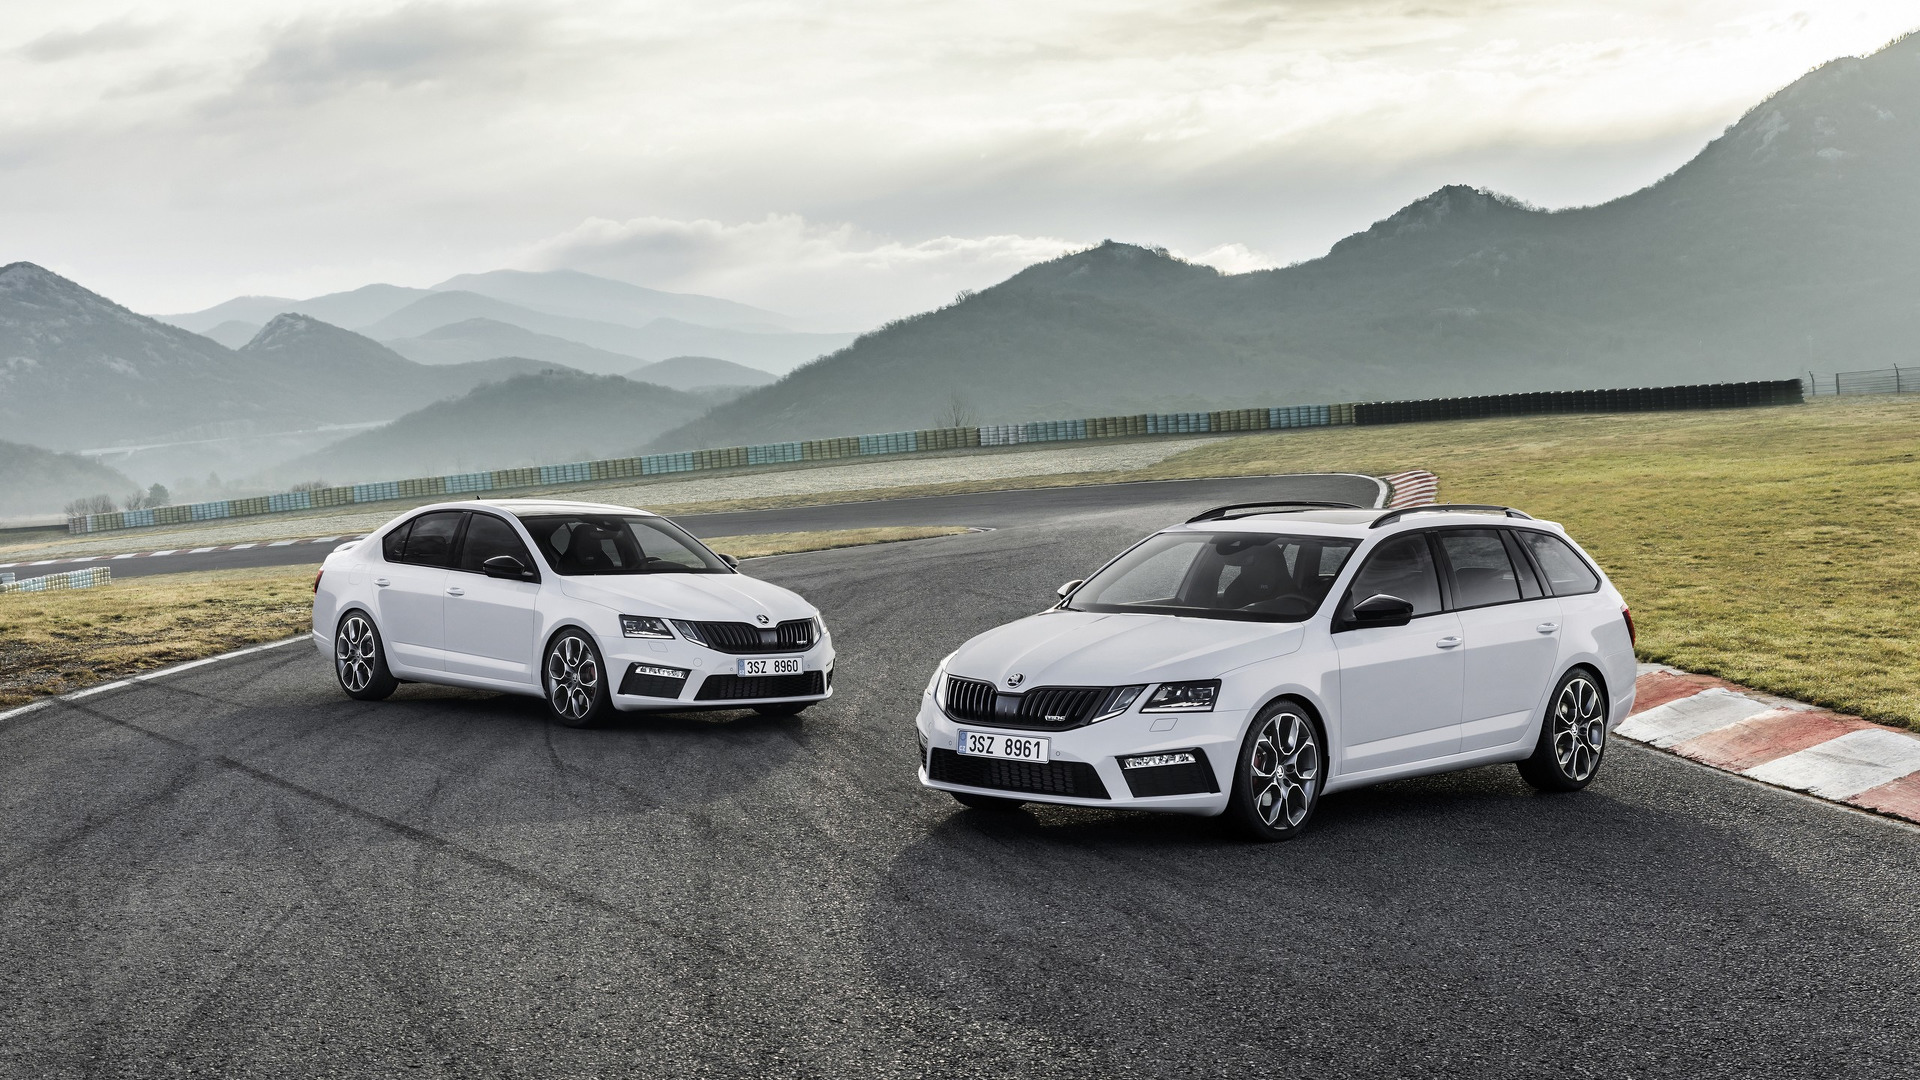 2017 Skoda Octavia RS facelift makes video debut product 2017-01-18 05:40:49